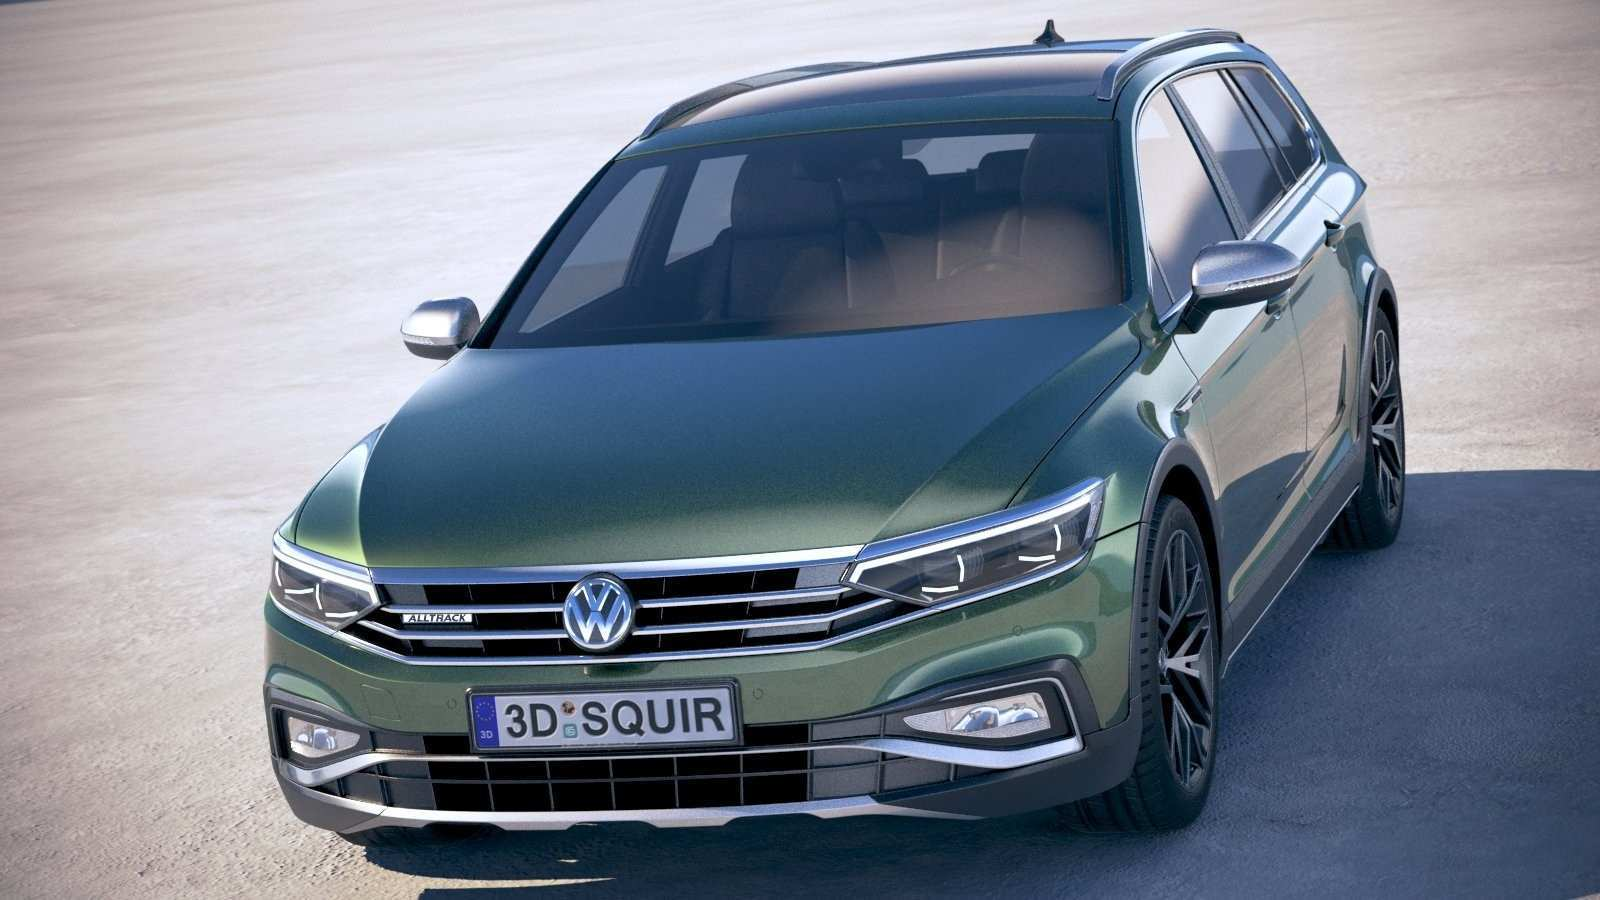 68 The Volkswagen Passat Alltrack 2020 Prices with Volkswagen Passat Alltrack 2020